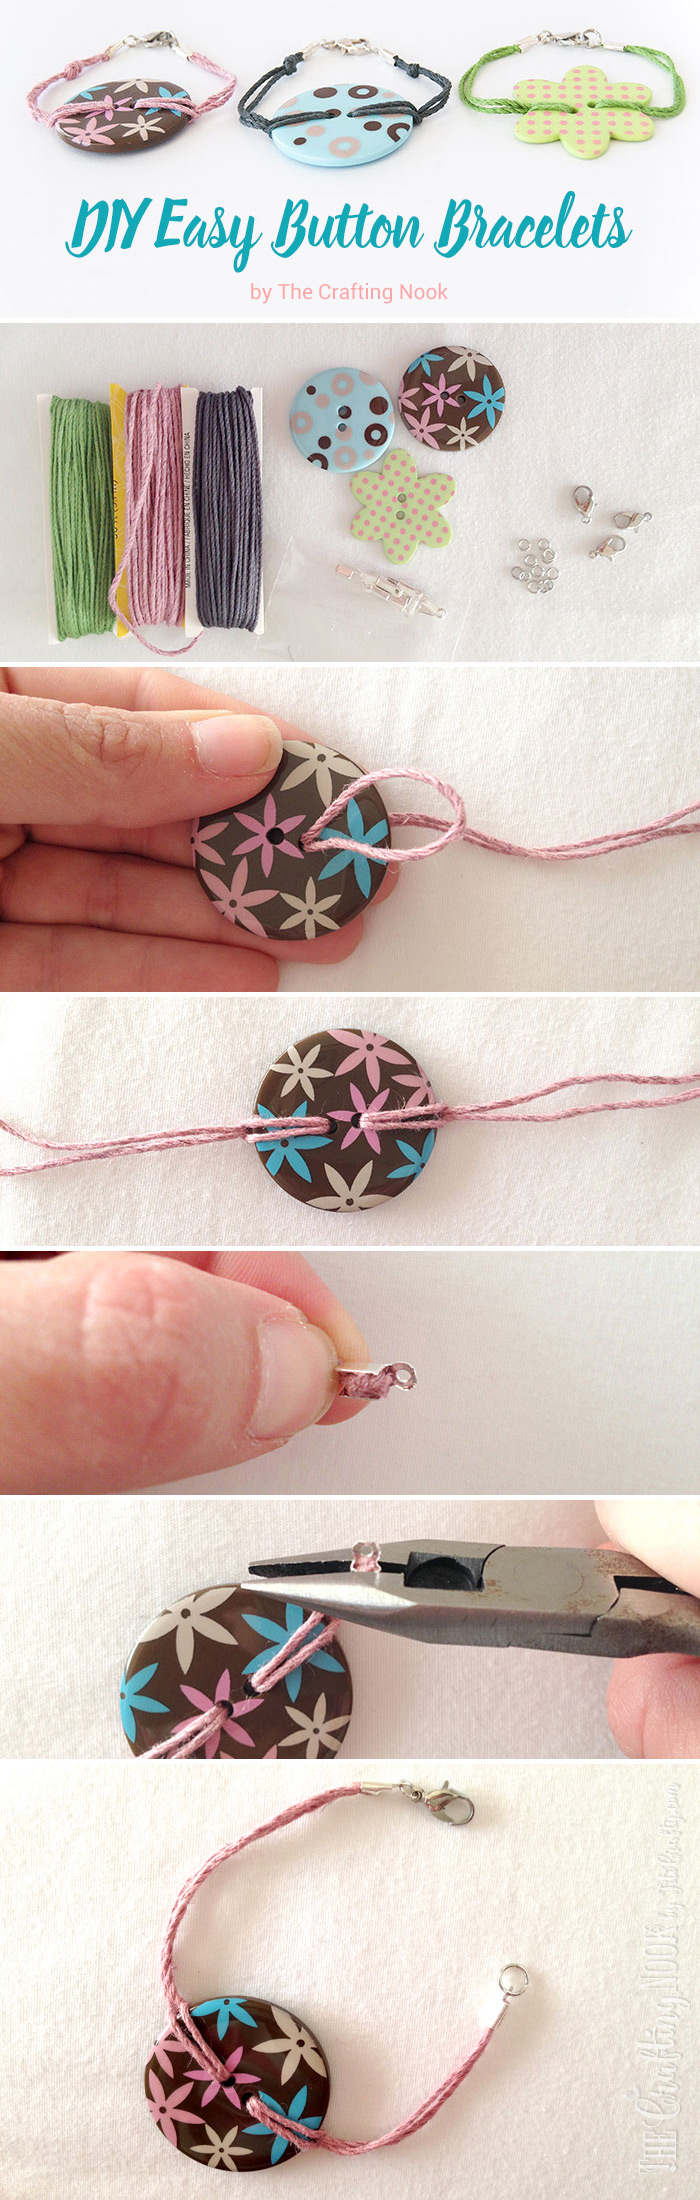 DIY-Easy-Button-Bracelets-TUTE-PIN